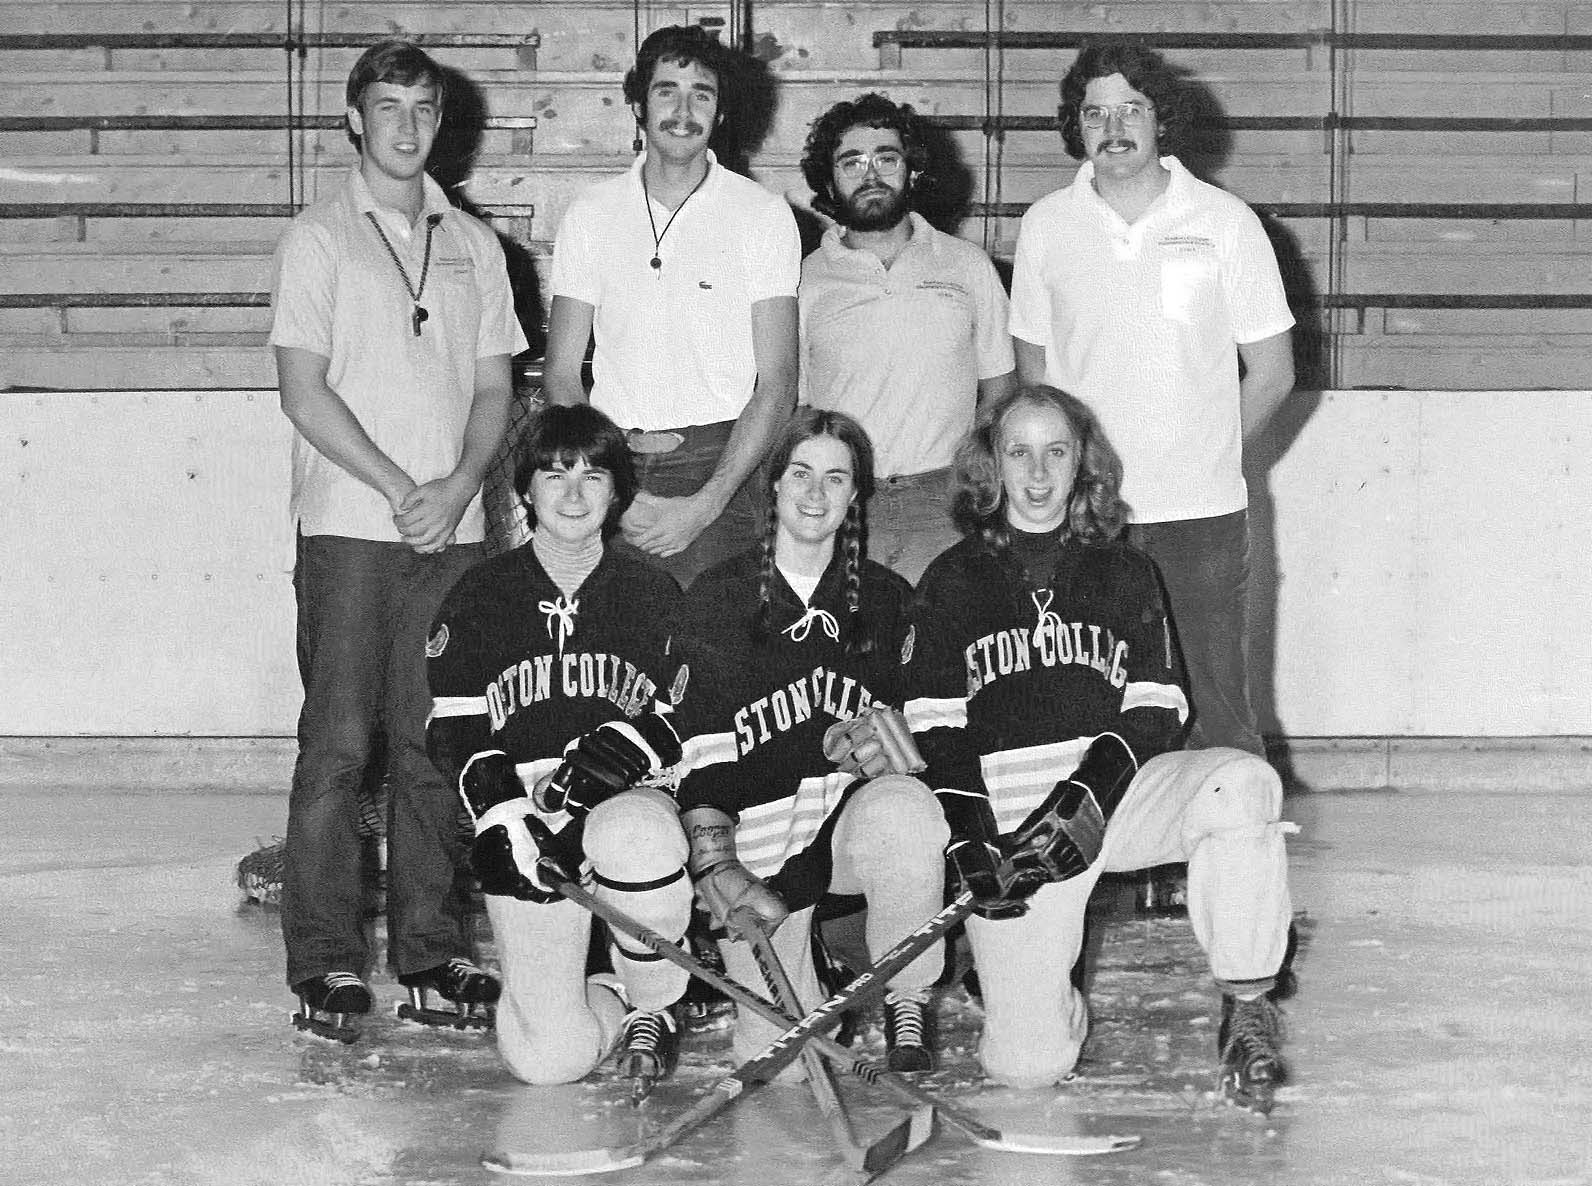 38926edbb7f Reenie Baker (front right) founded the women s team at Boston College in  1973.